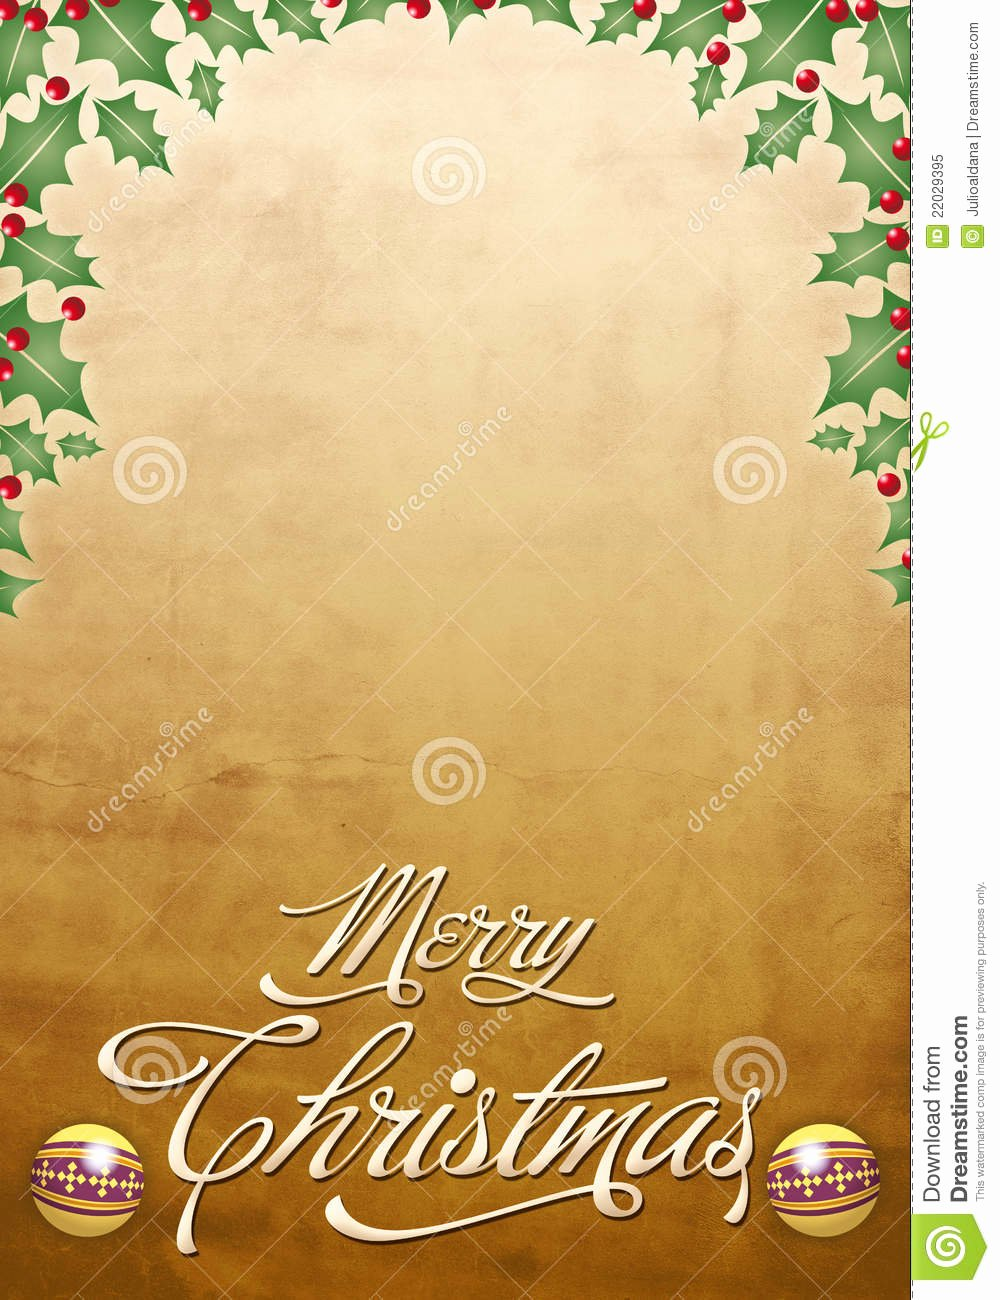 Free Christmas Poster Template Fresh Free Christmas Posters – Happy Holidays